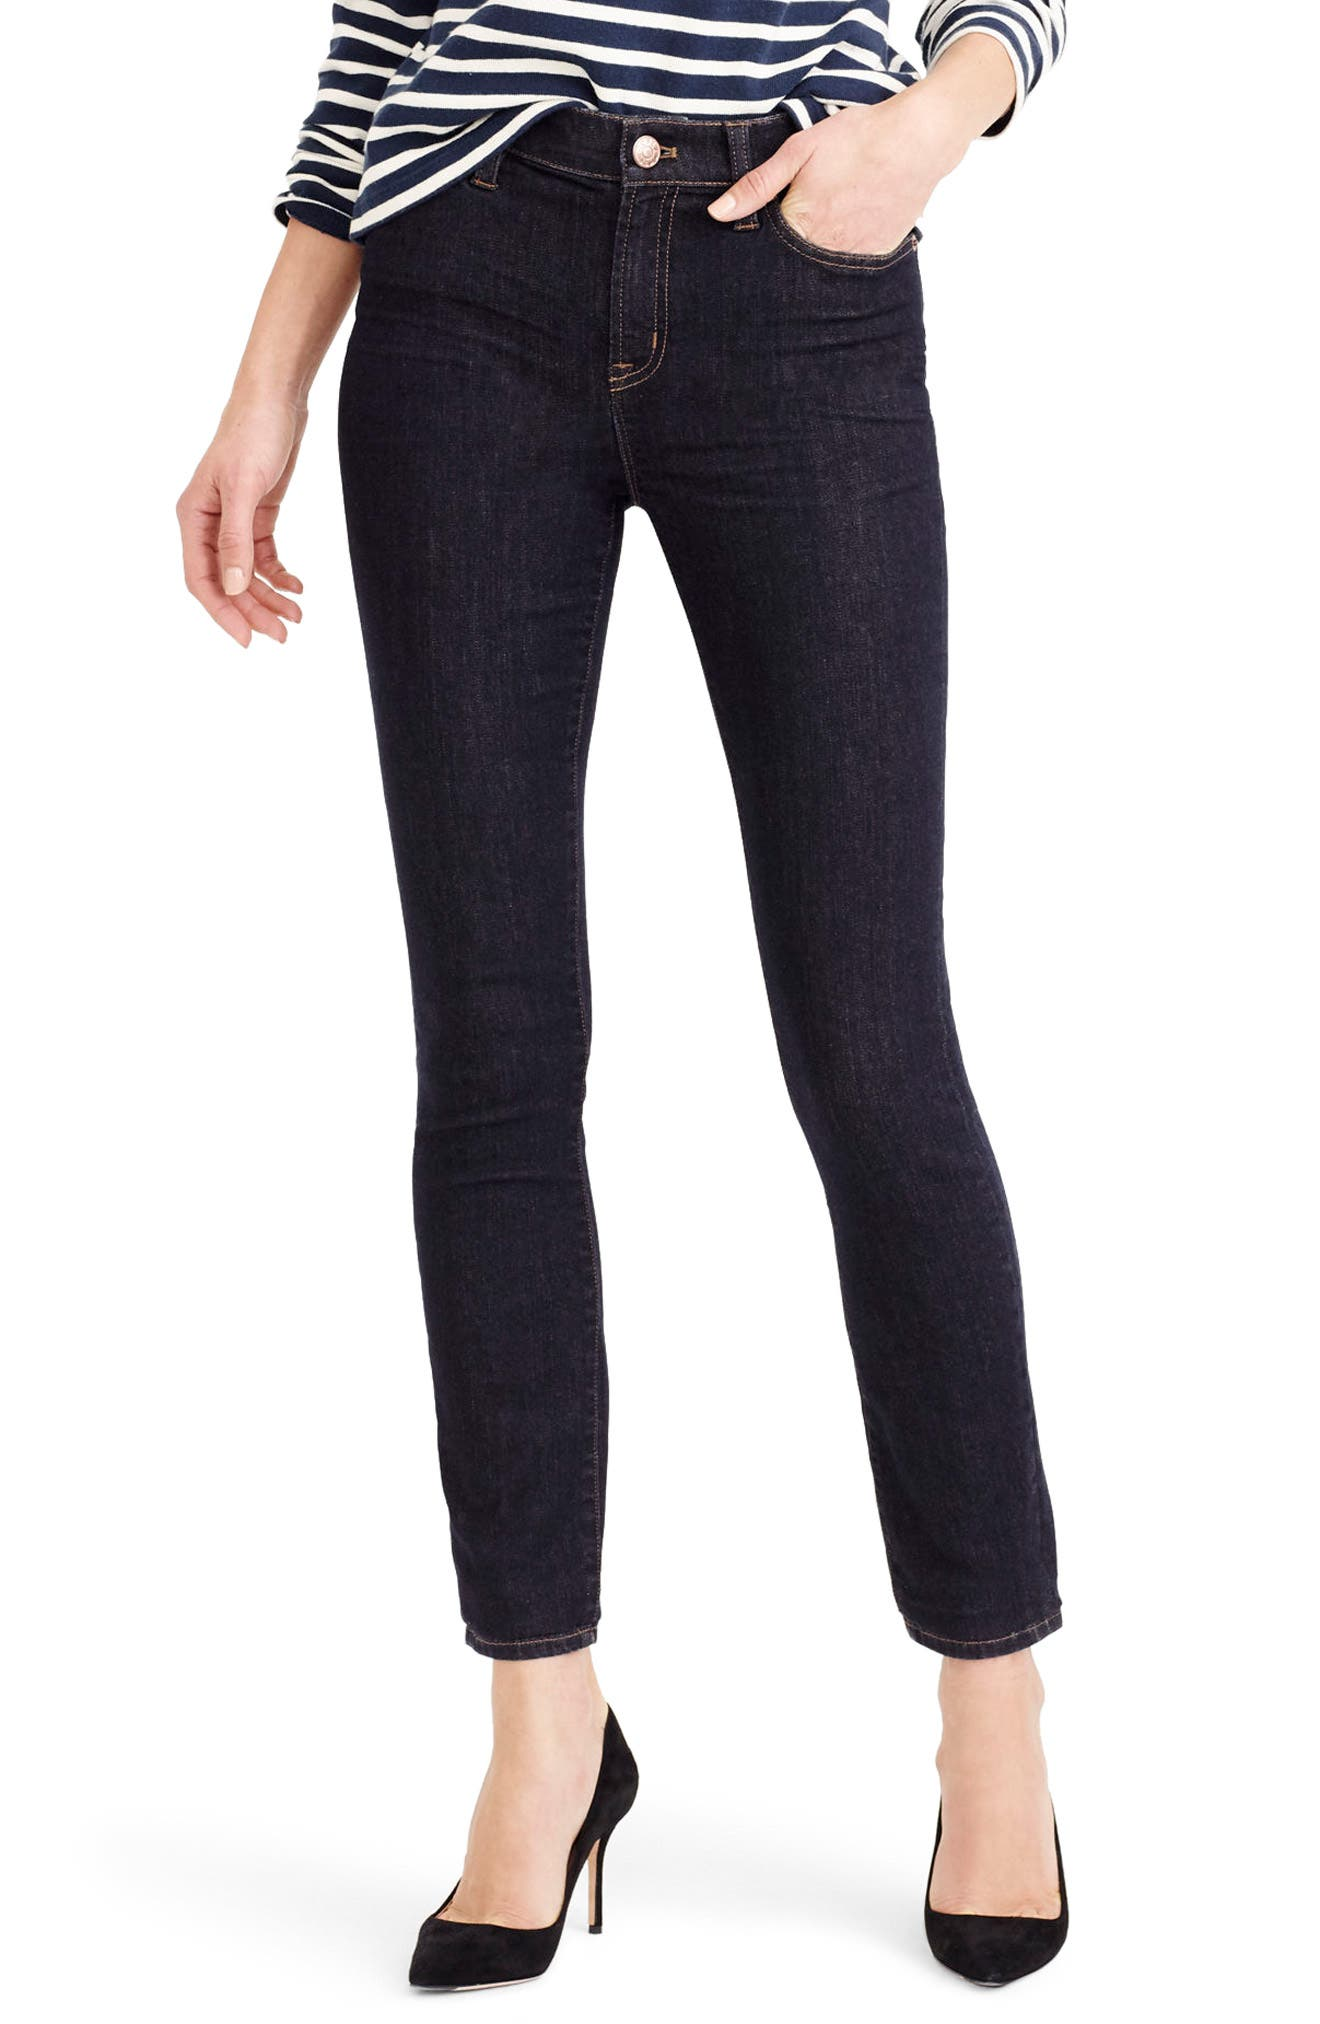 J.Crew Lookout High Rise Jeans,                         Main,                         color, Resin Wash